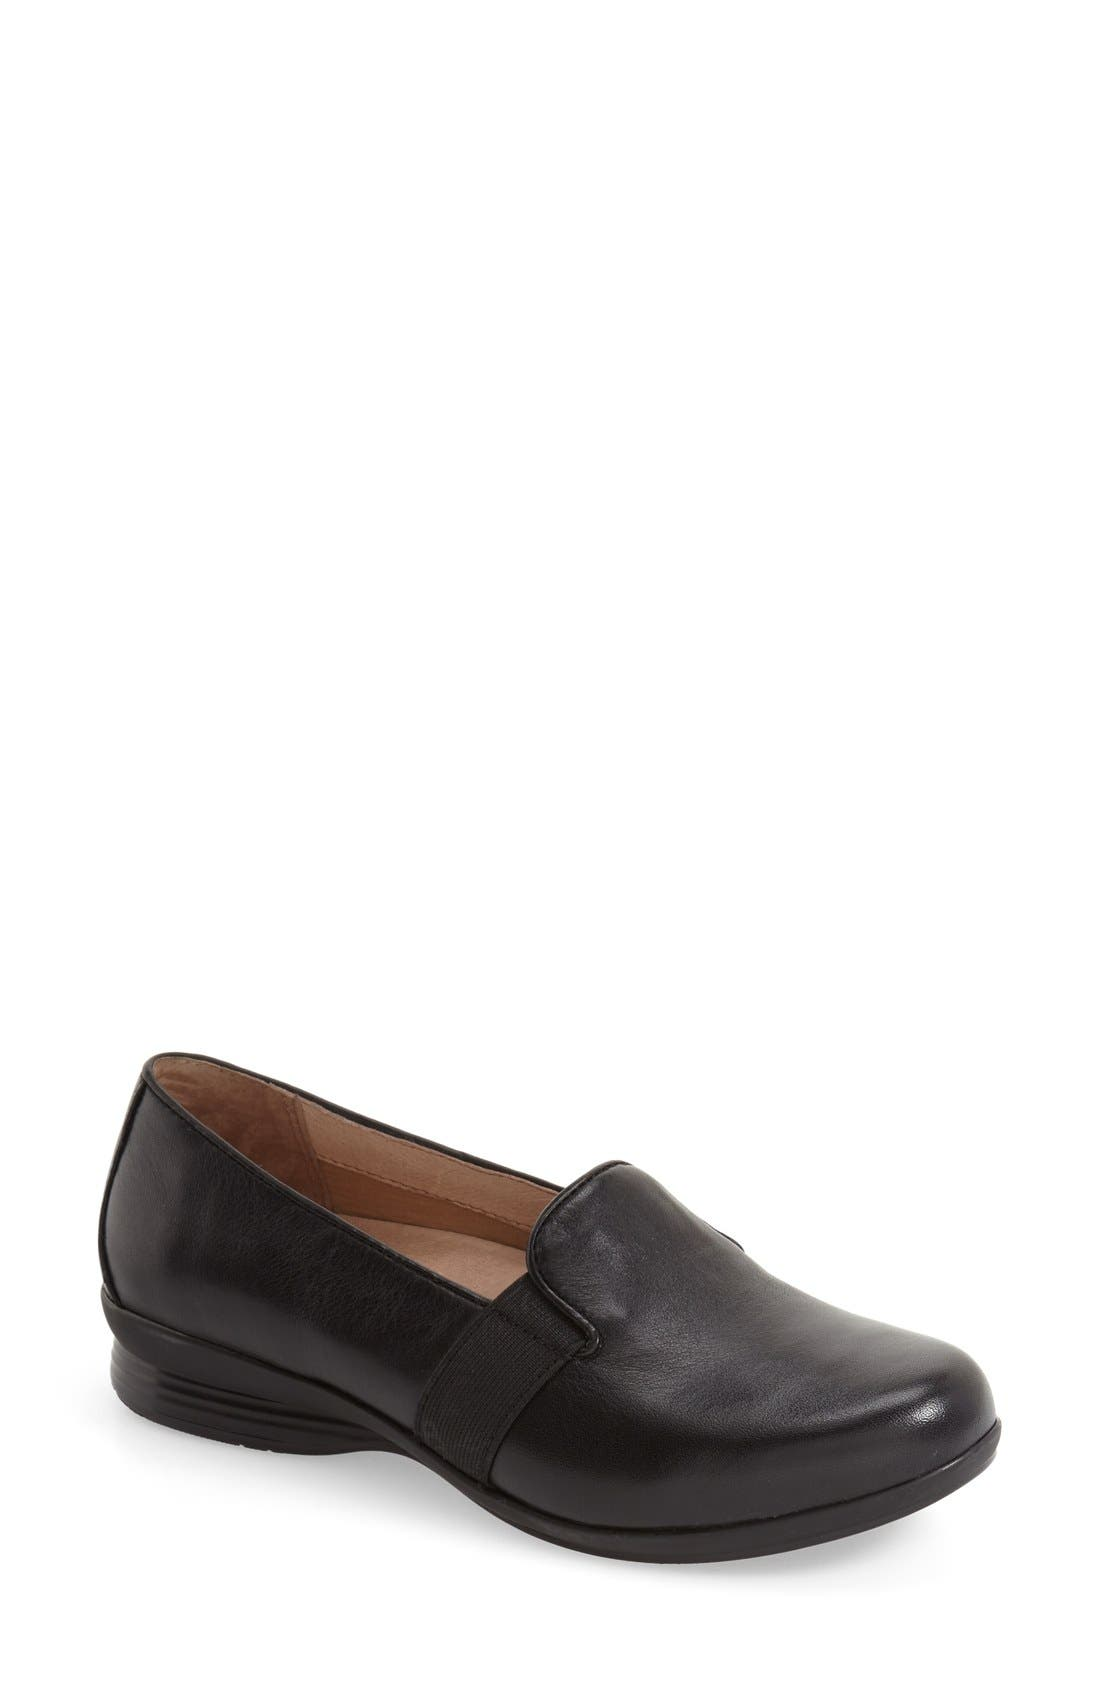 'Addy' Loafer,                         Main,                         color, Black Nappa Leather